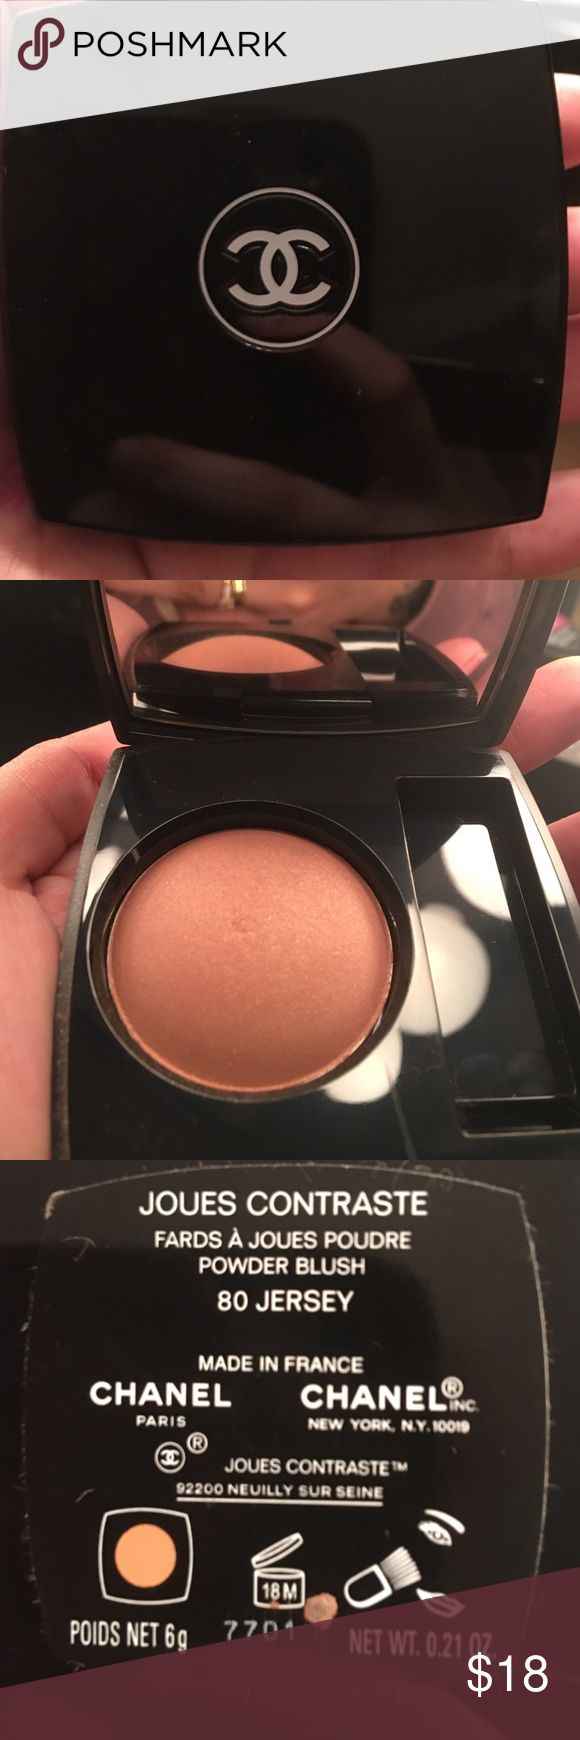 Chanel blush Very pretty Chanel blush (yes it is real Chanel) I bought from Bloomingdales Macy's. CHANEL Makeup Blush